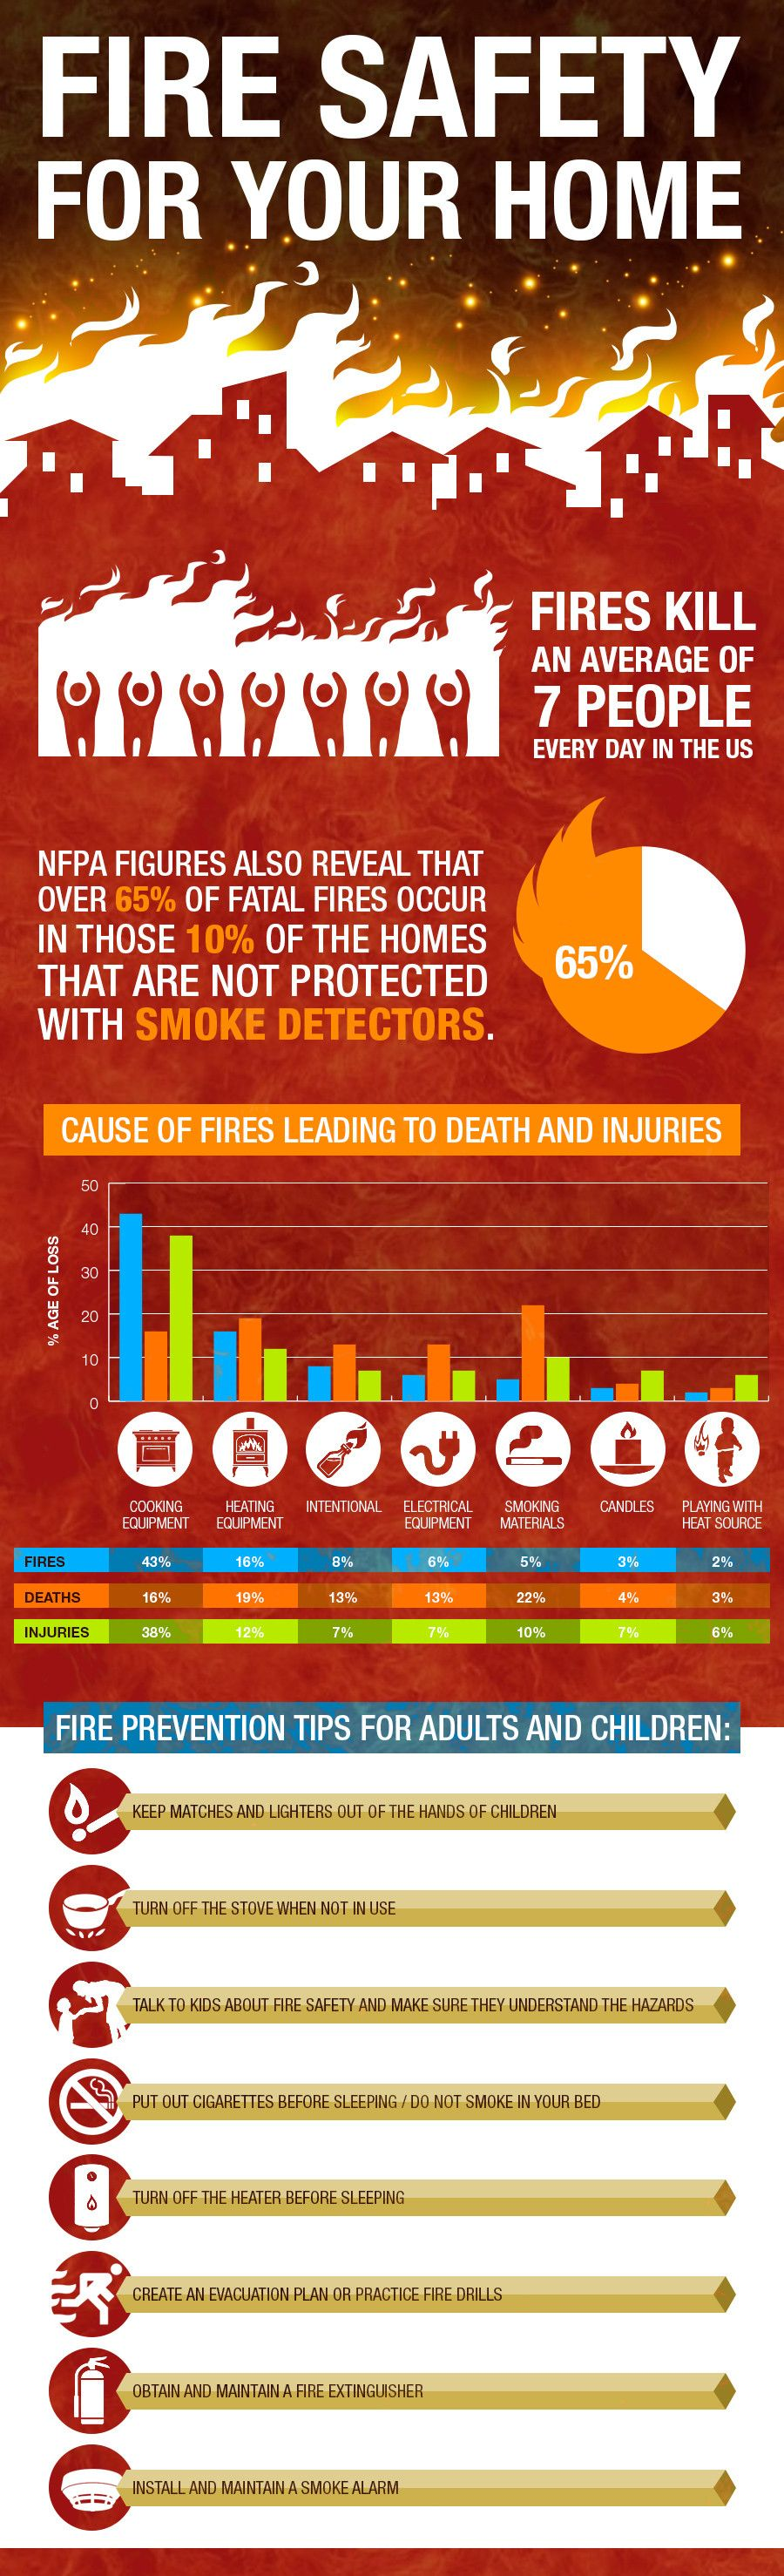 8 ways to keep your home fire safe infographic safety for How to protect your house from fire